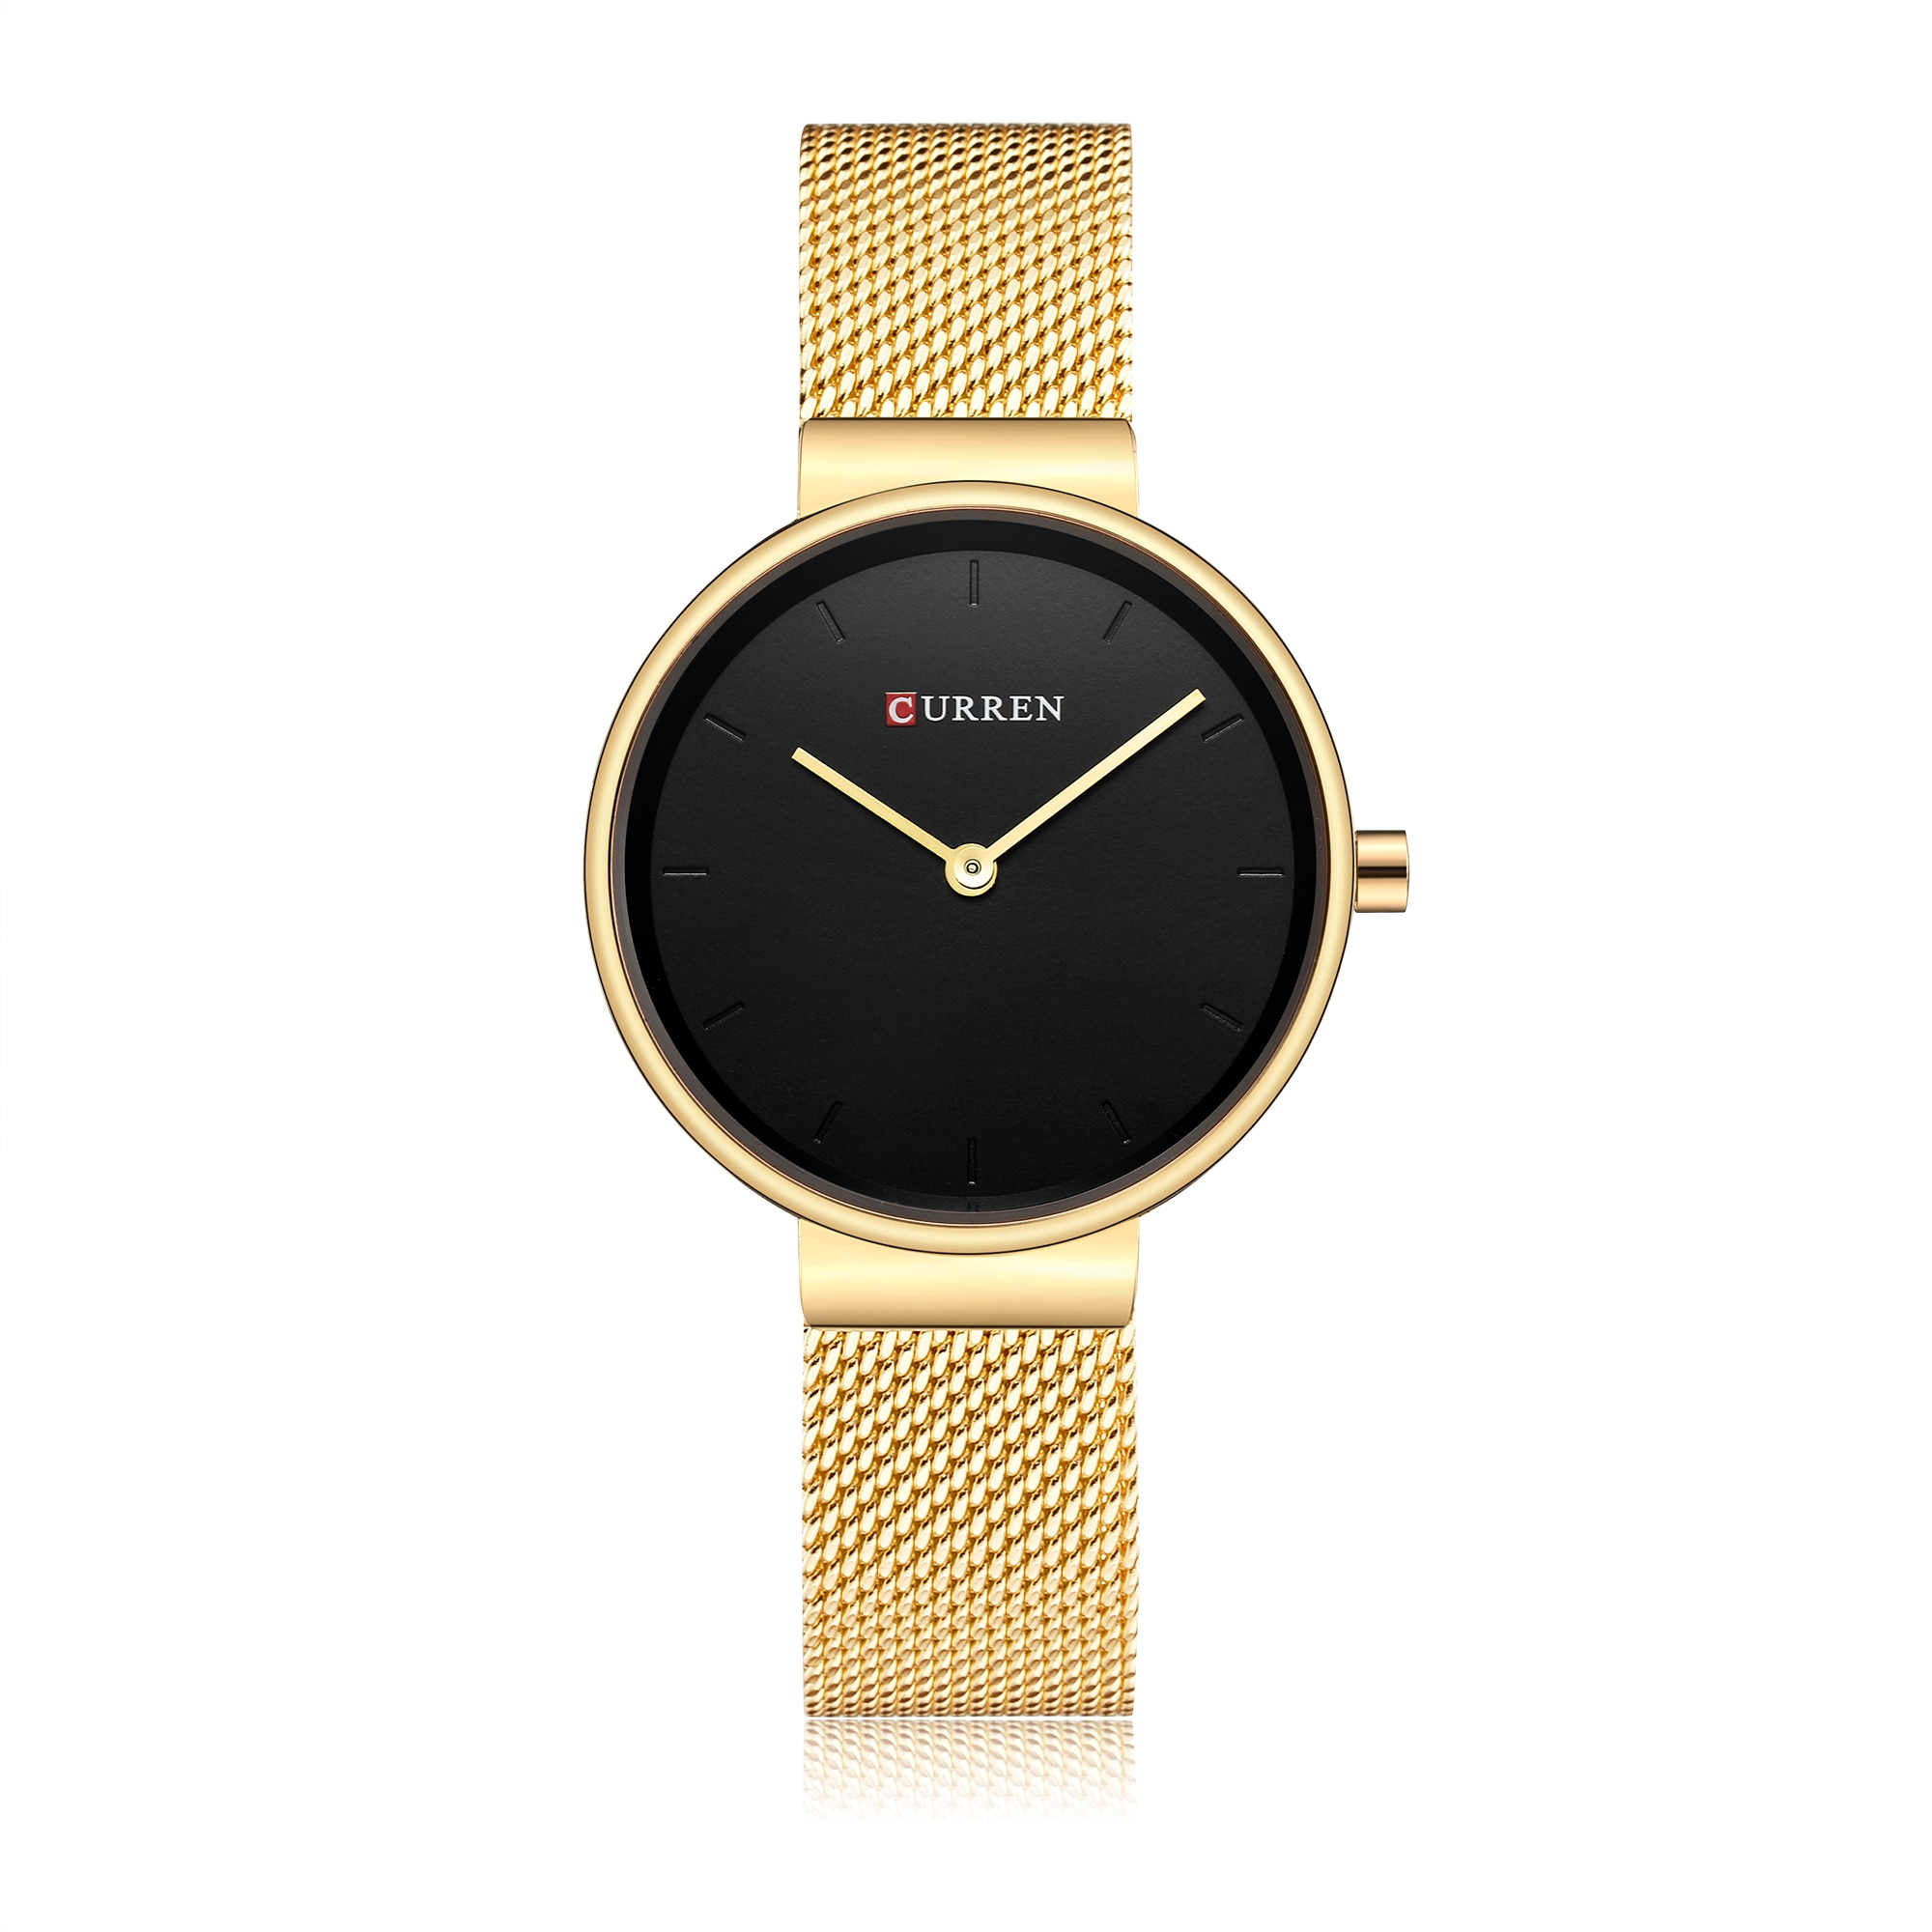 CURREN Ladies Watch 2019 Luxury Women's Watch Modern Fashion Mesh Quartz Wristwatch Water Resistant Black Dial Bayan Kol Saati enlarge